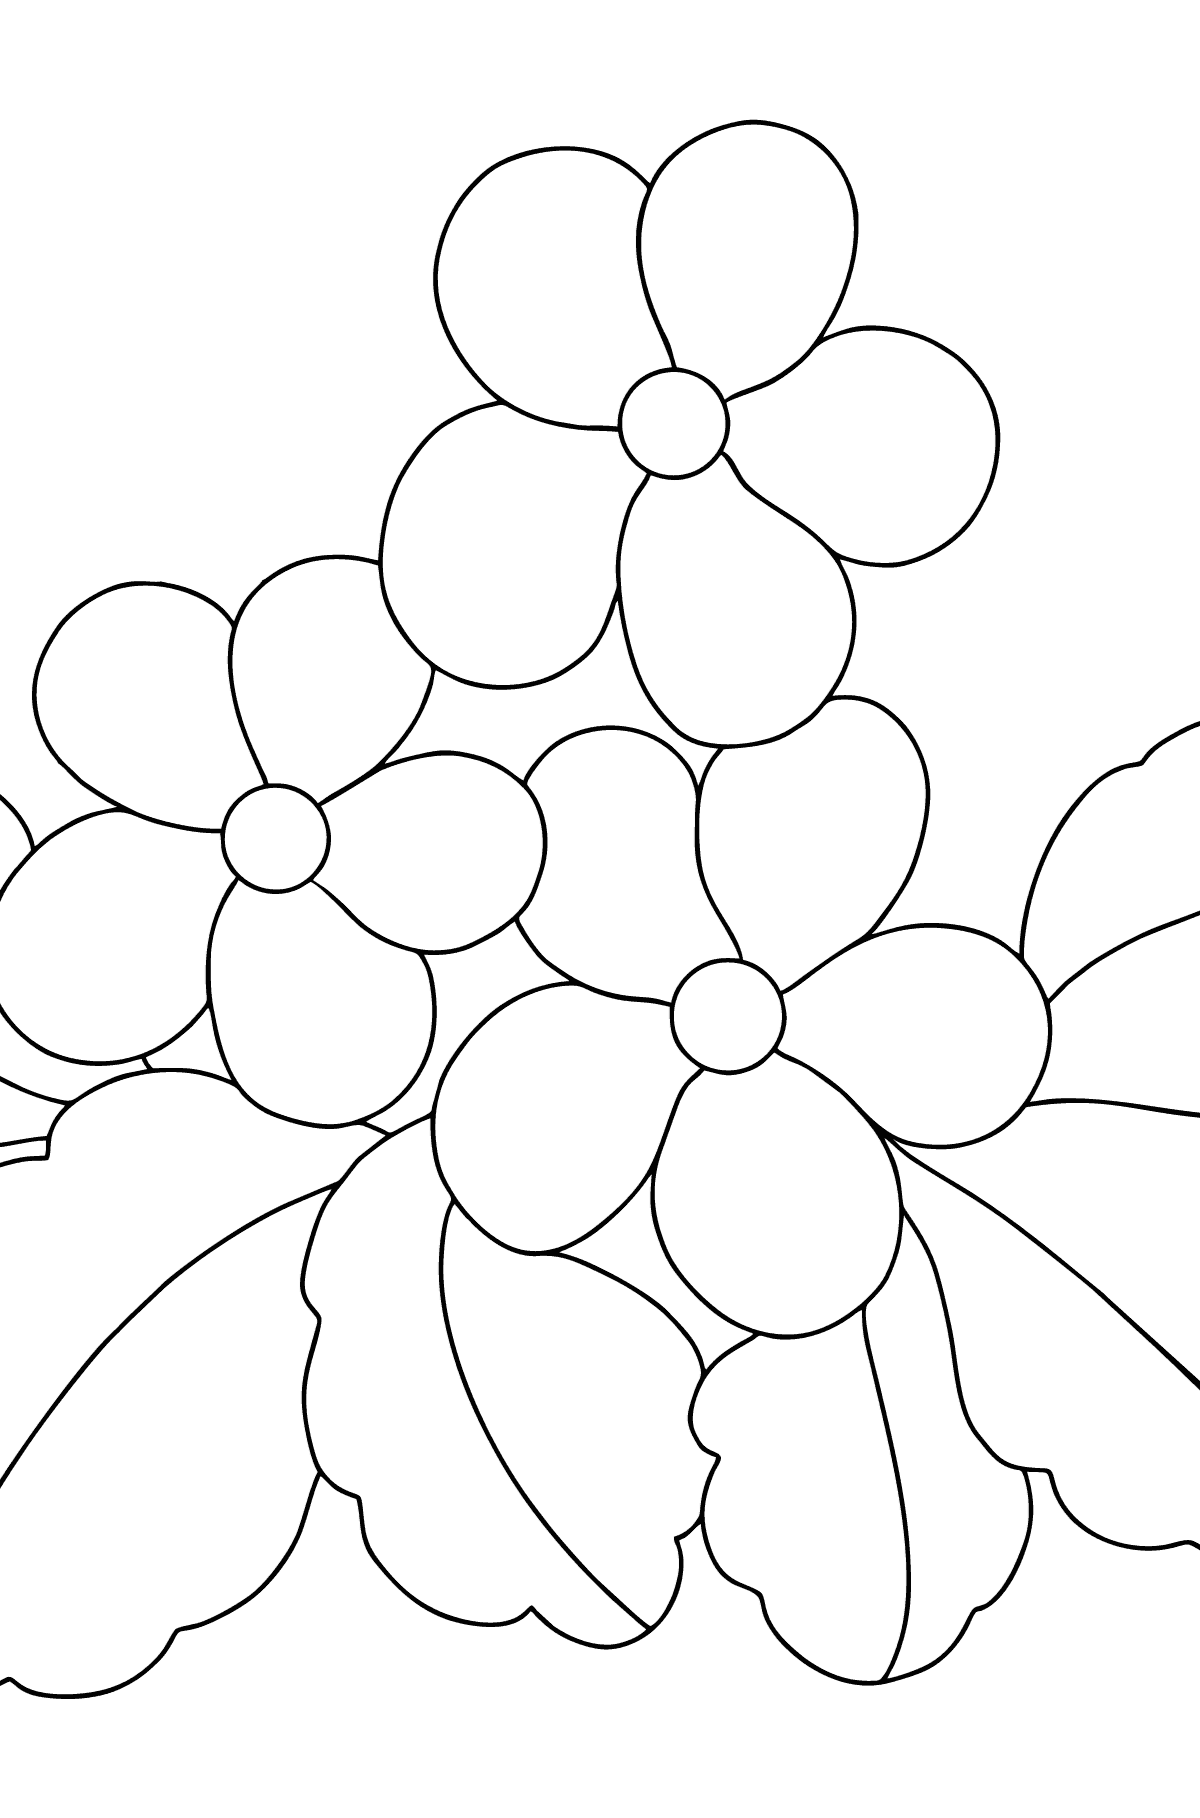 Spring Coloring Page - Time for Flowers for Children